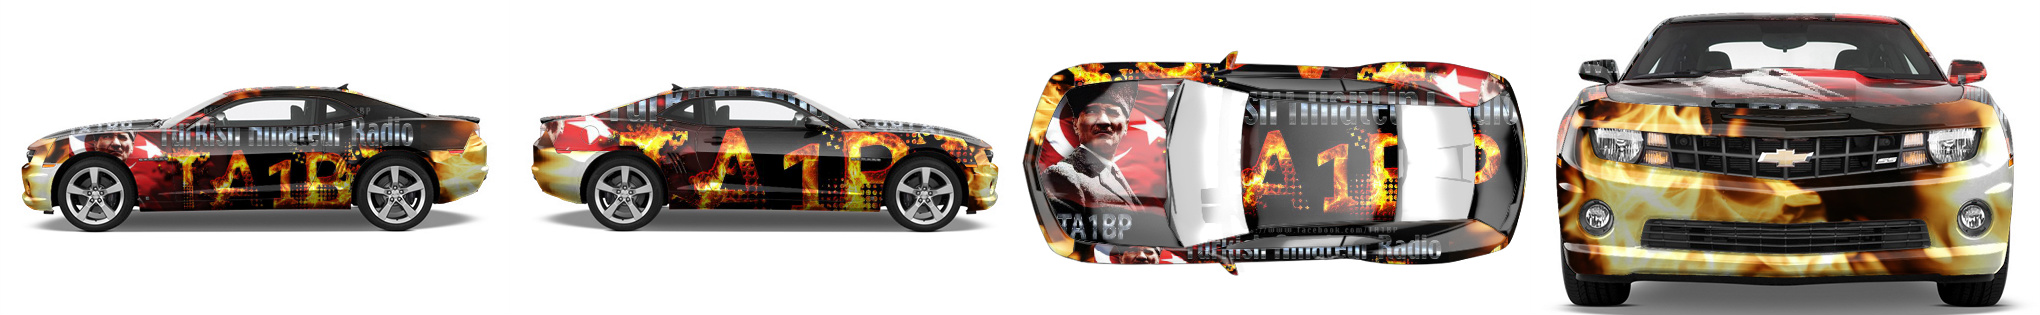 Muscle Car Wrap #16098